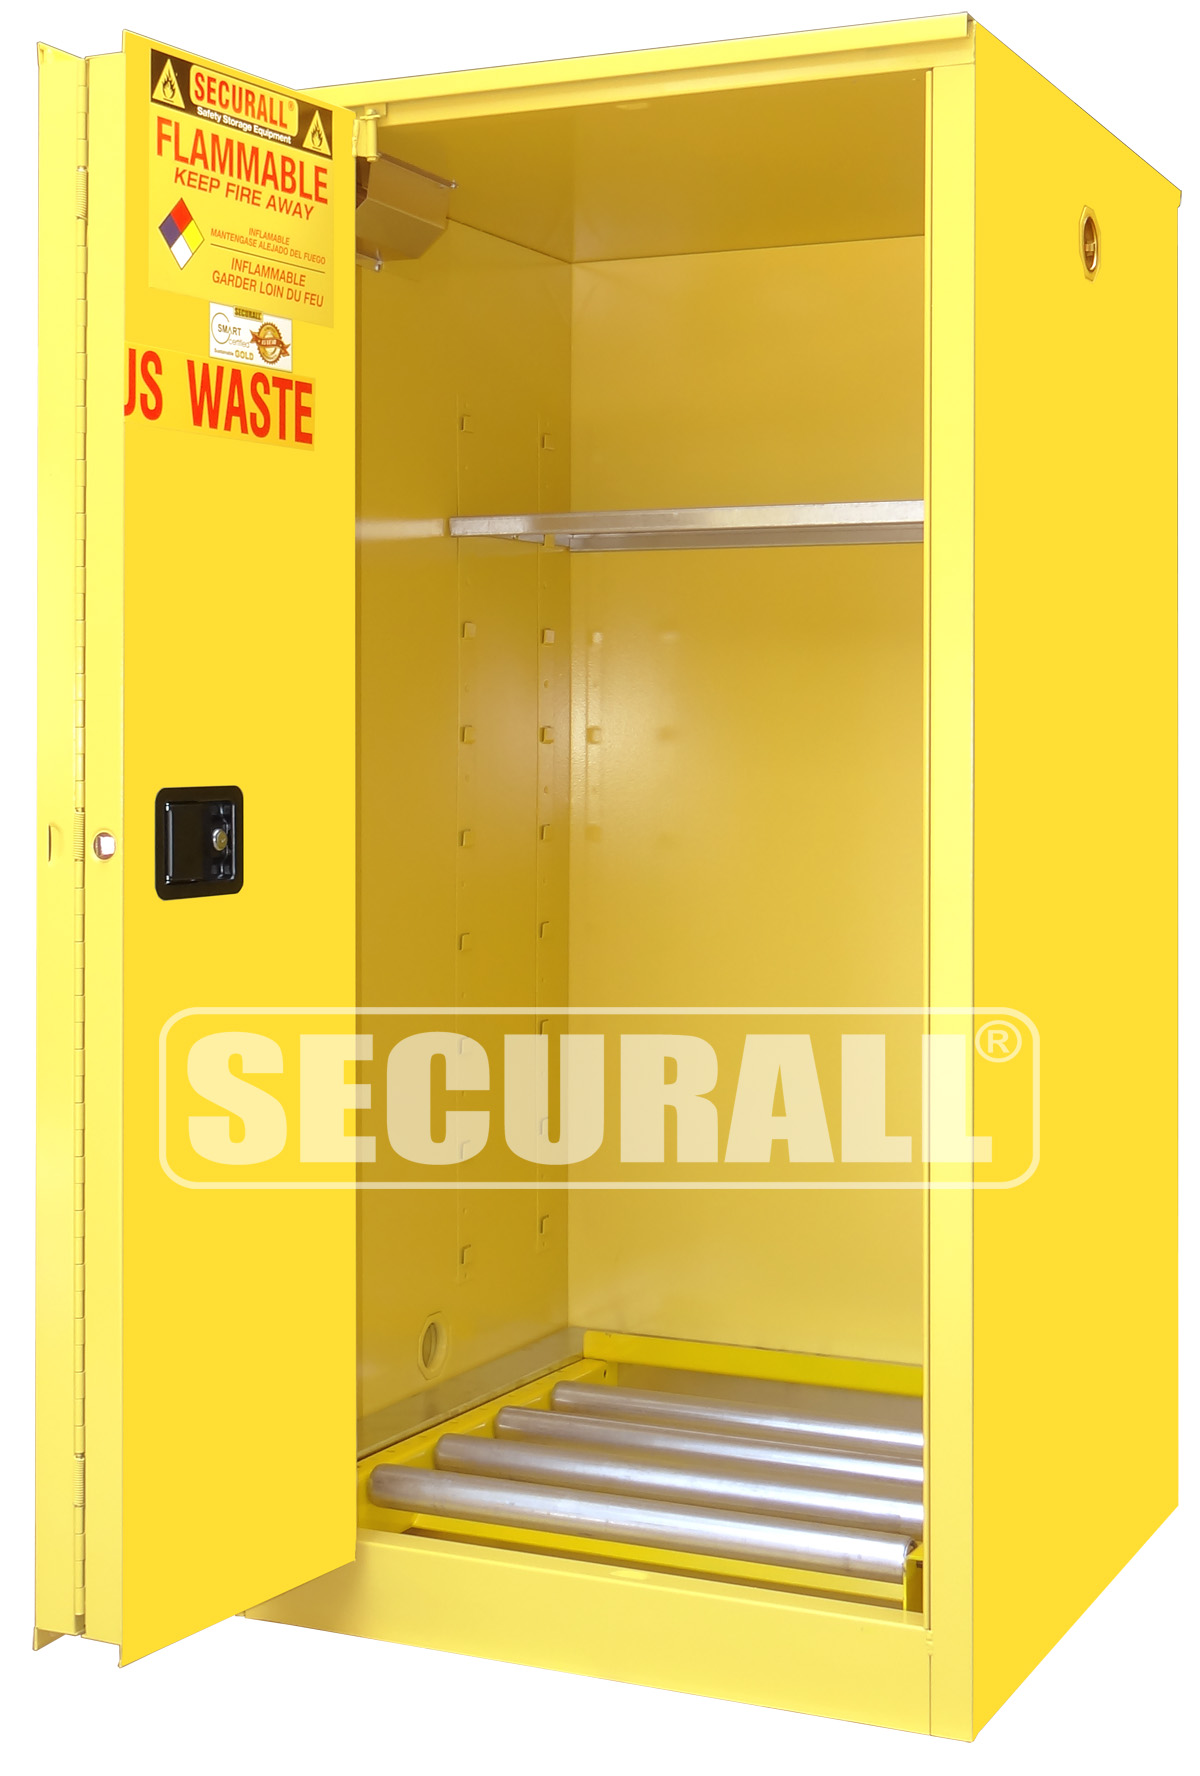 SECURALL Hazmat Storage drum Storage cabinets Hazardous Waste